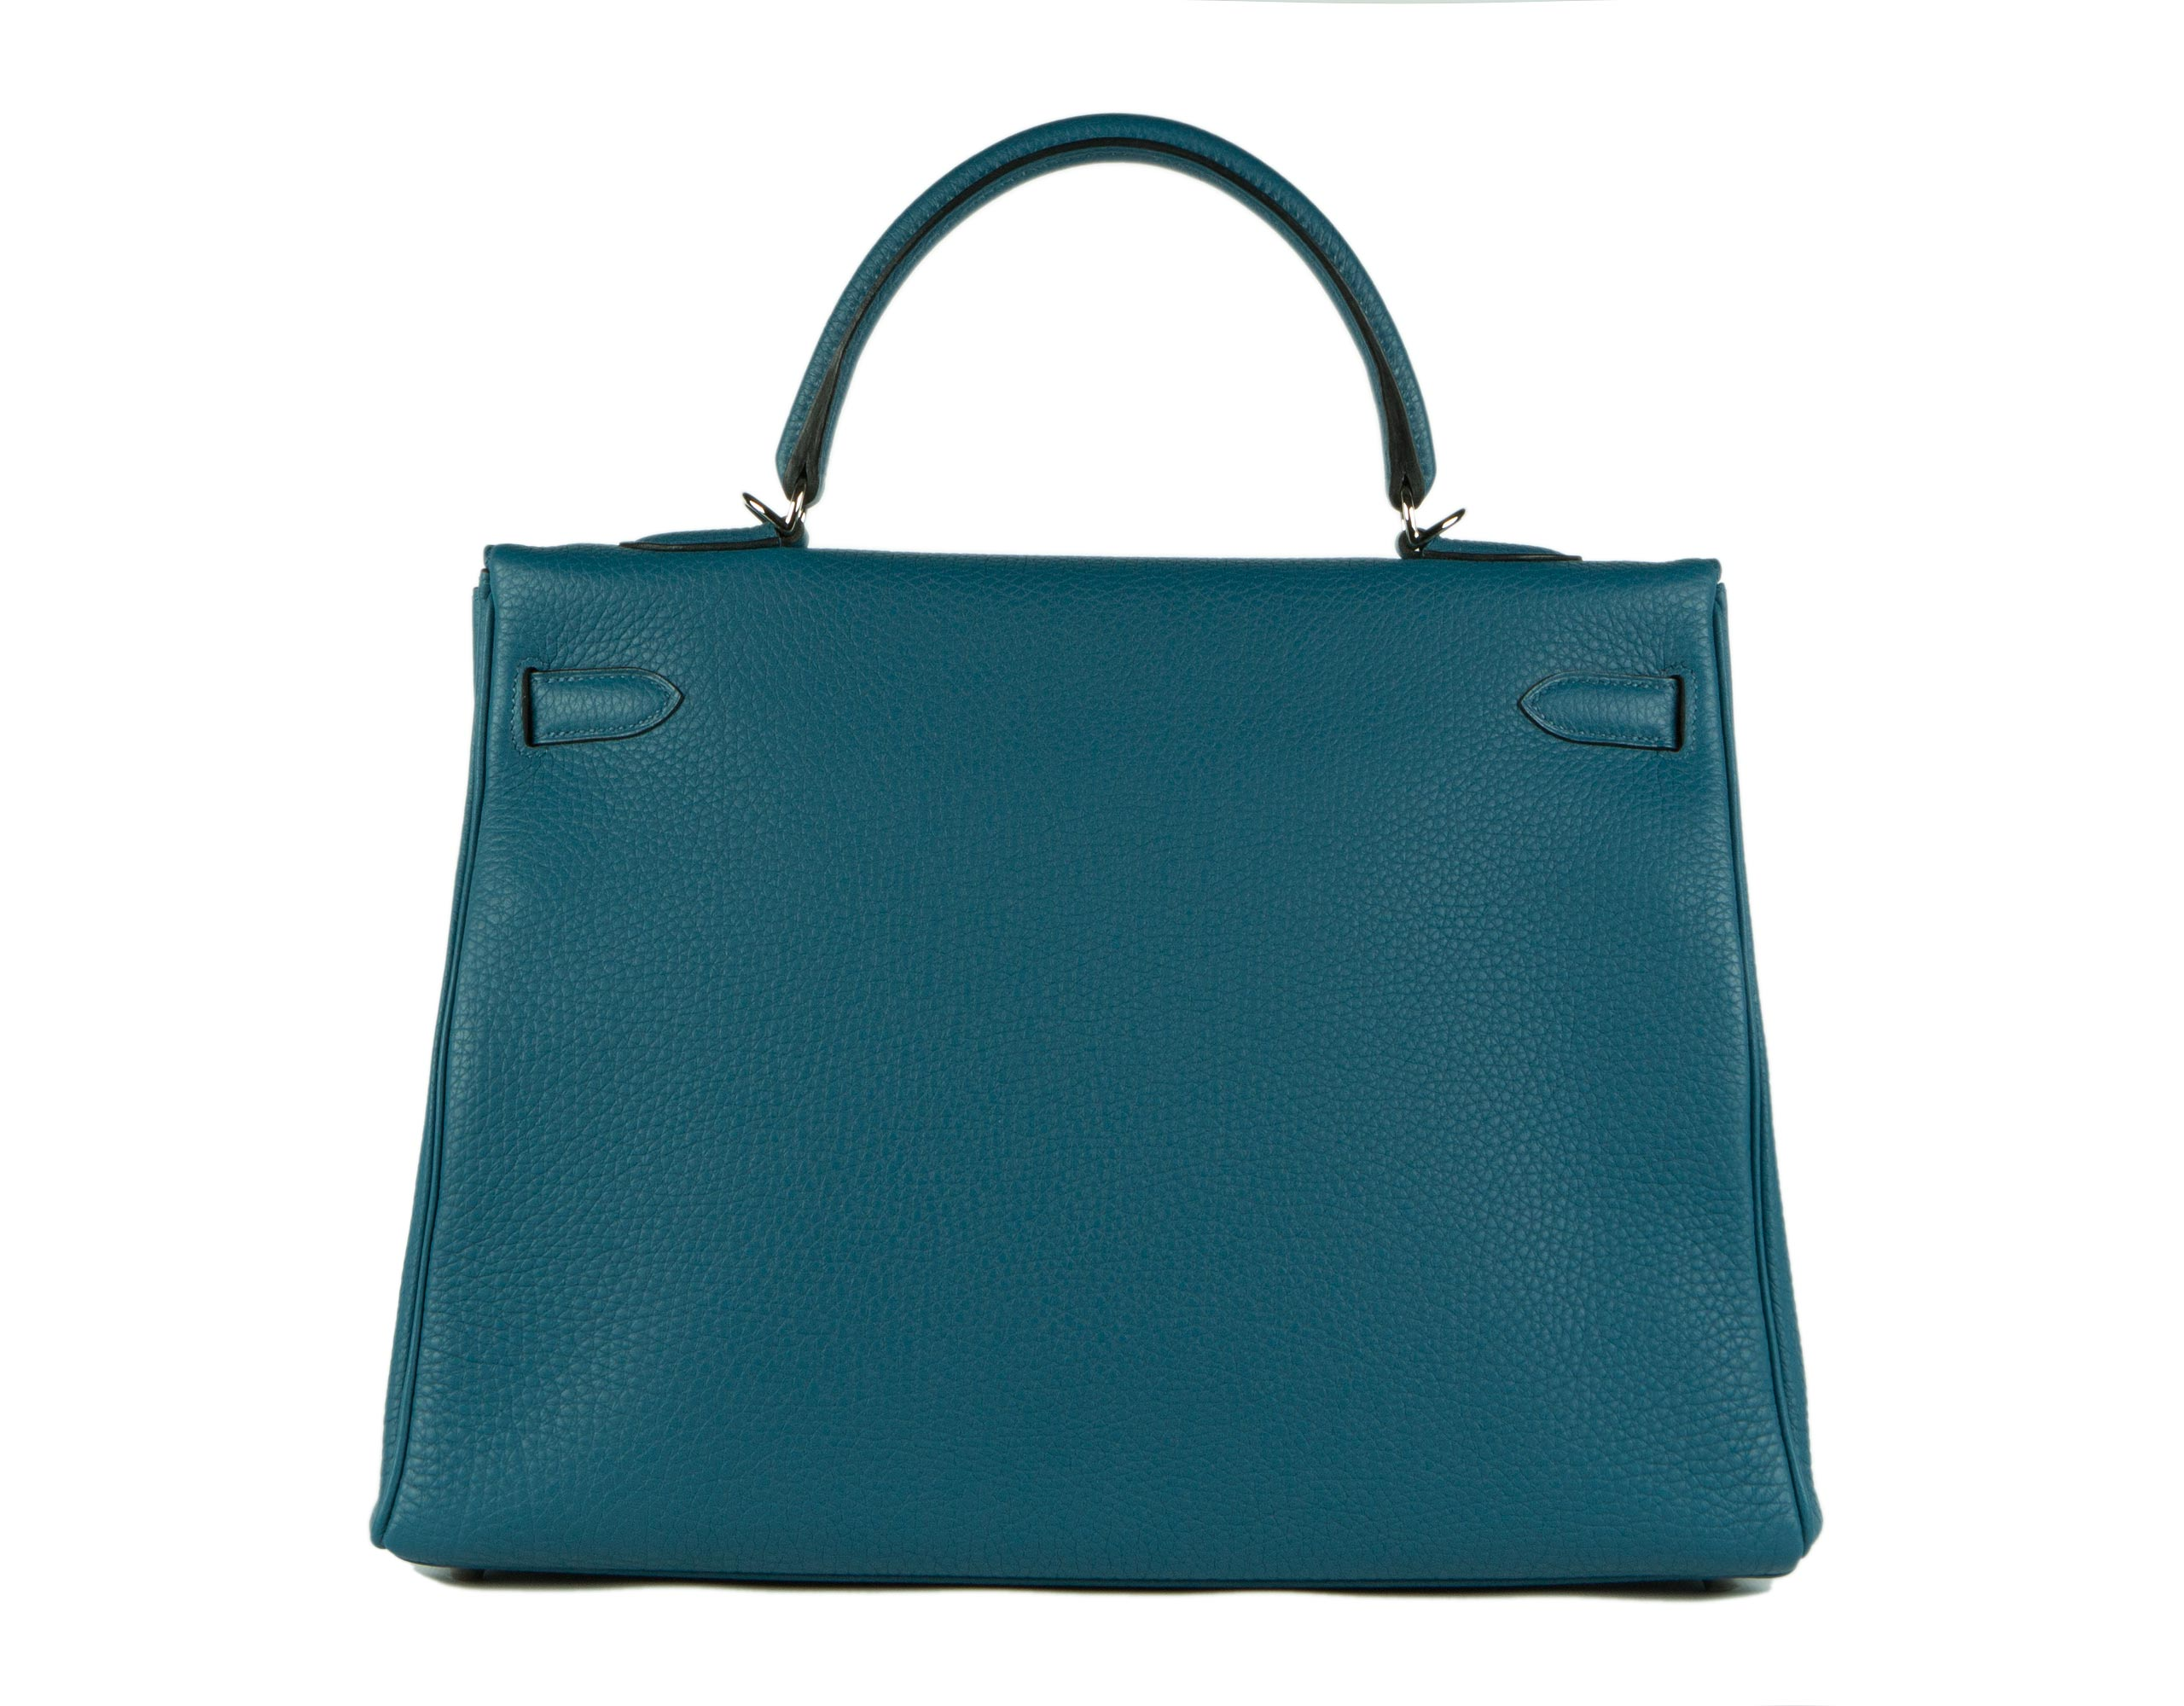 Hermes Bag Kelly Blue Cobalt Togo 35cm K80 Back